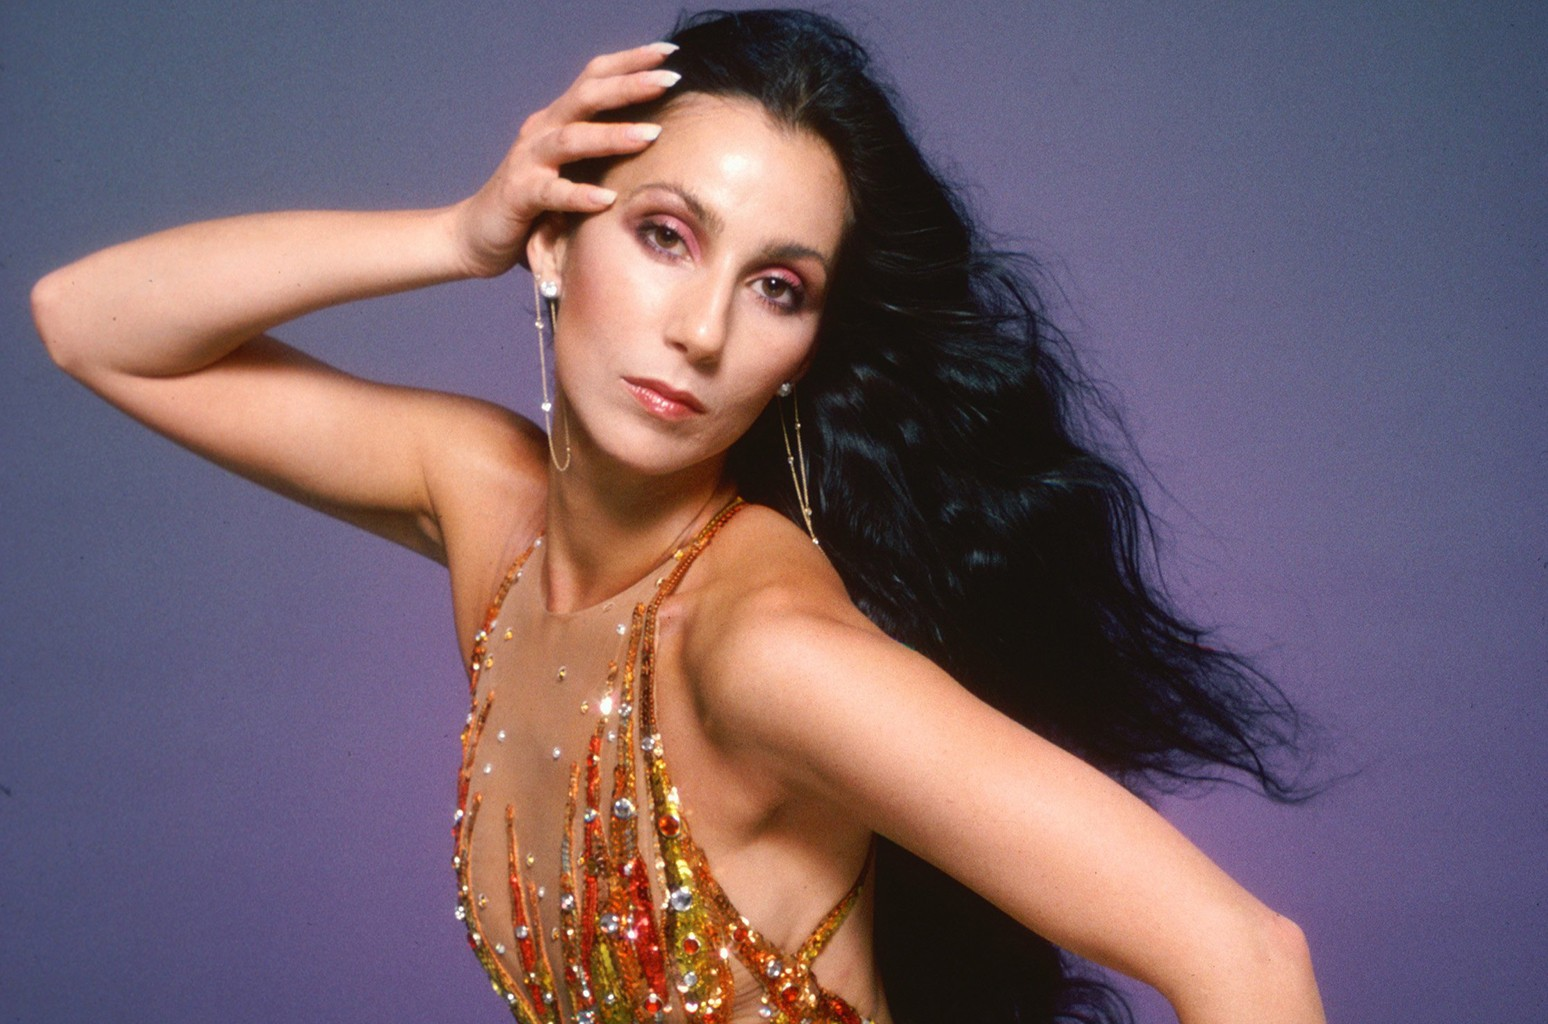 Cher poses in a Bob Mackie creation on April 9, 1978 in Los Angeles.